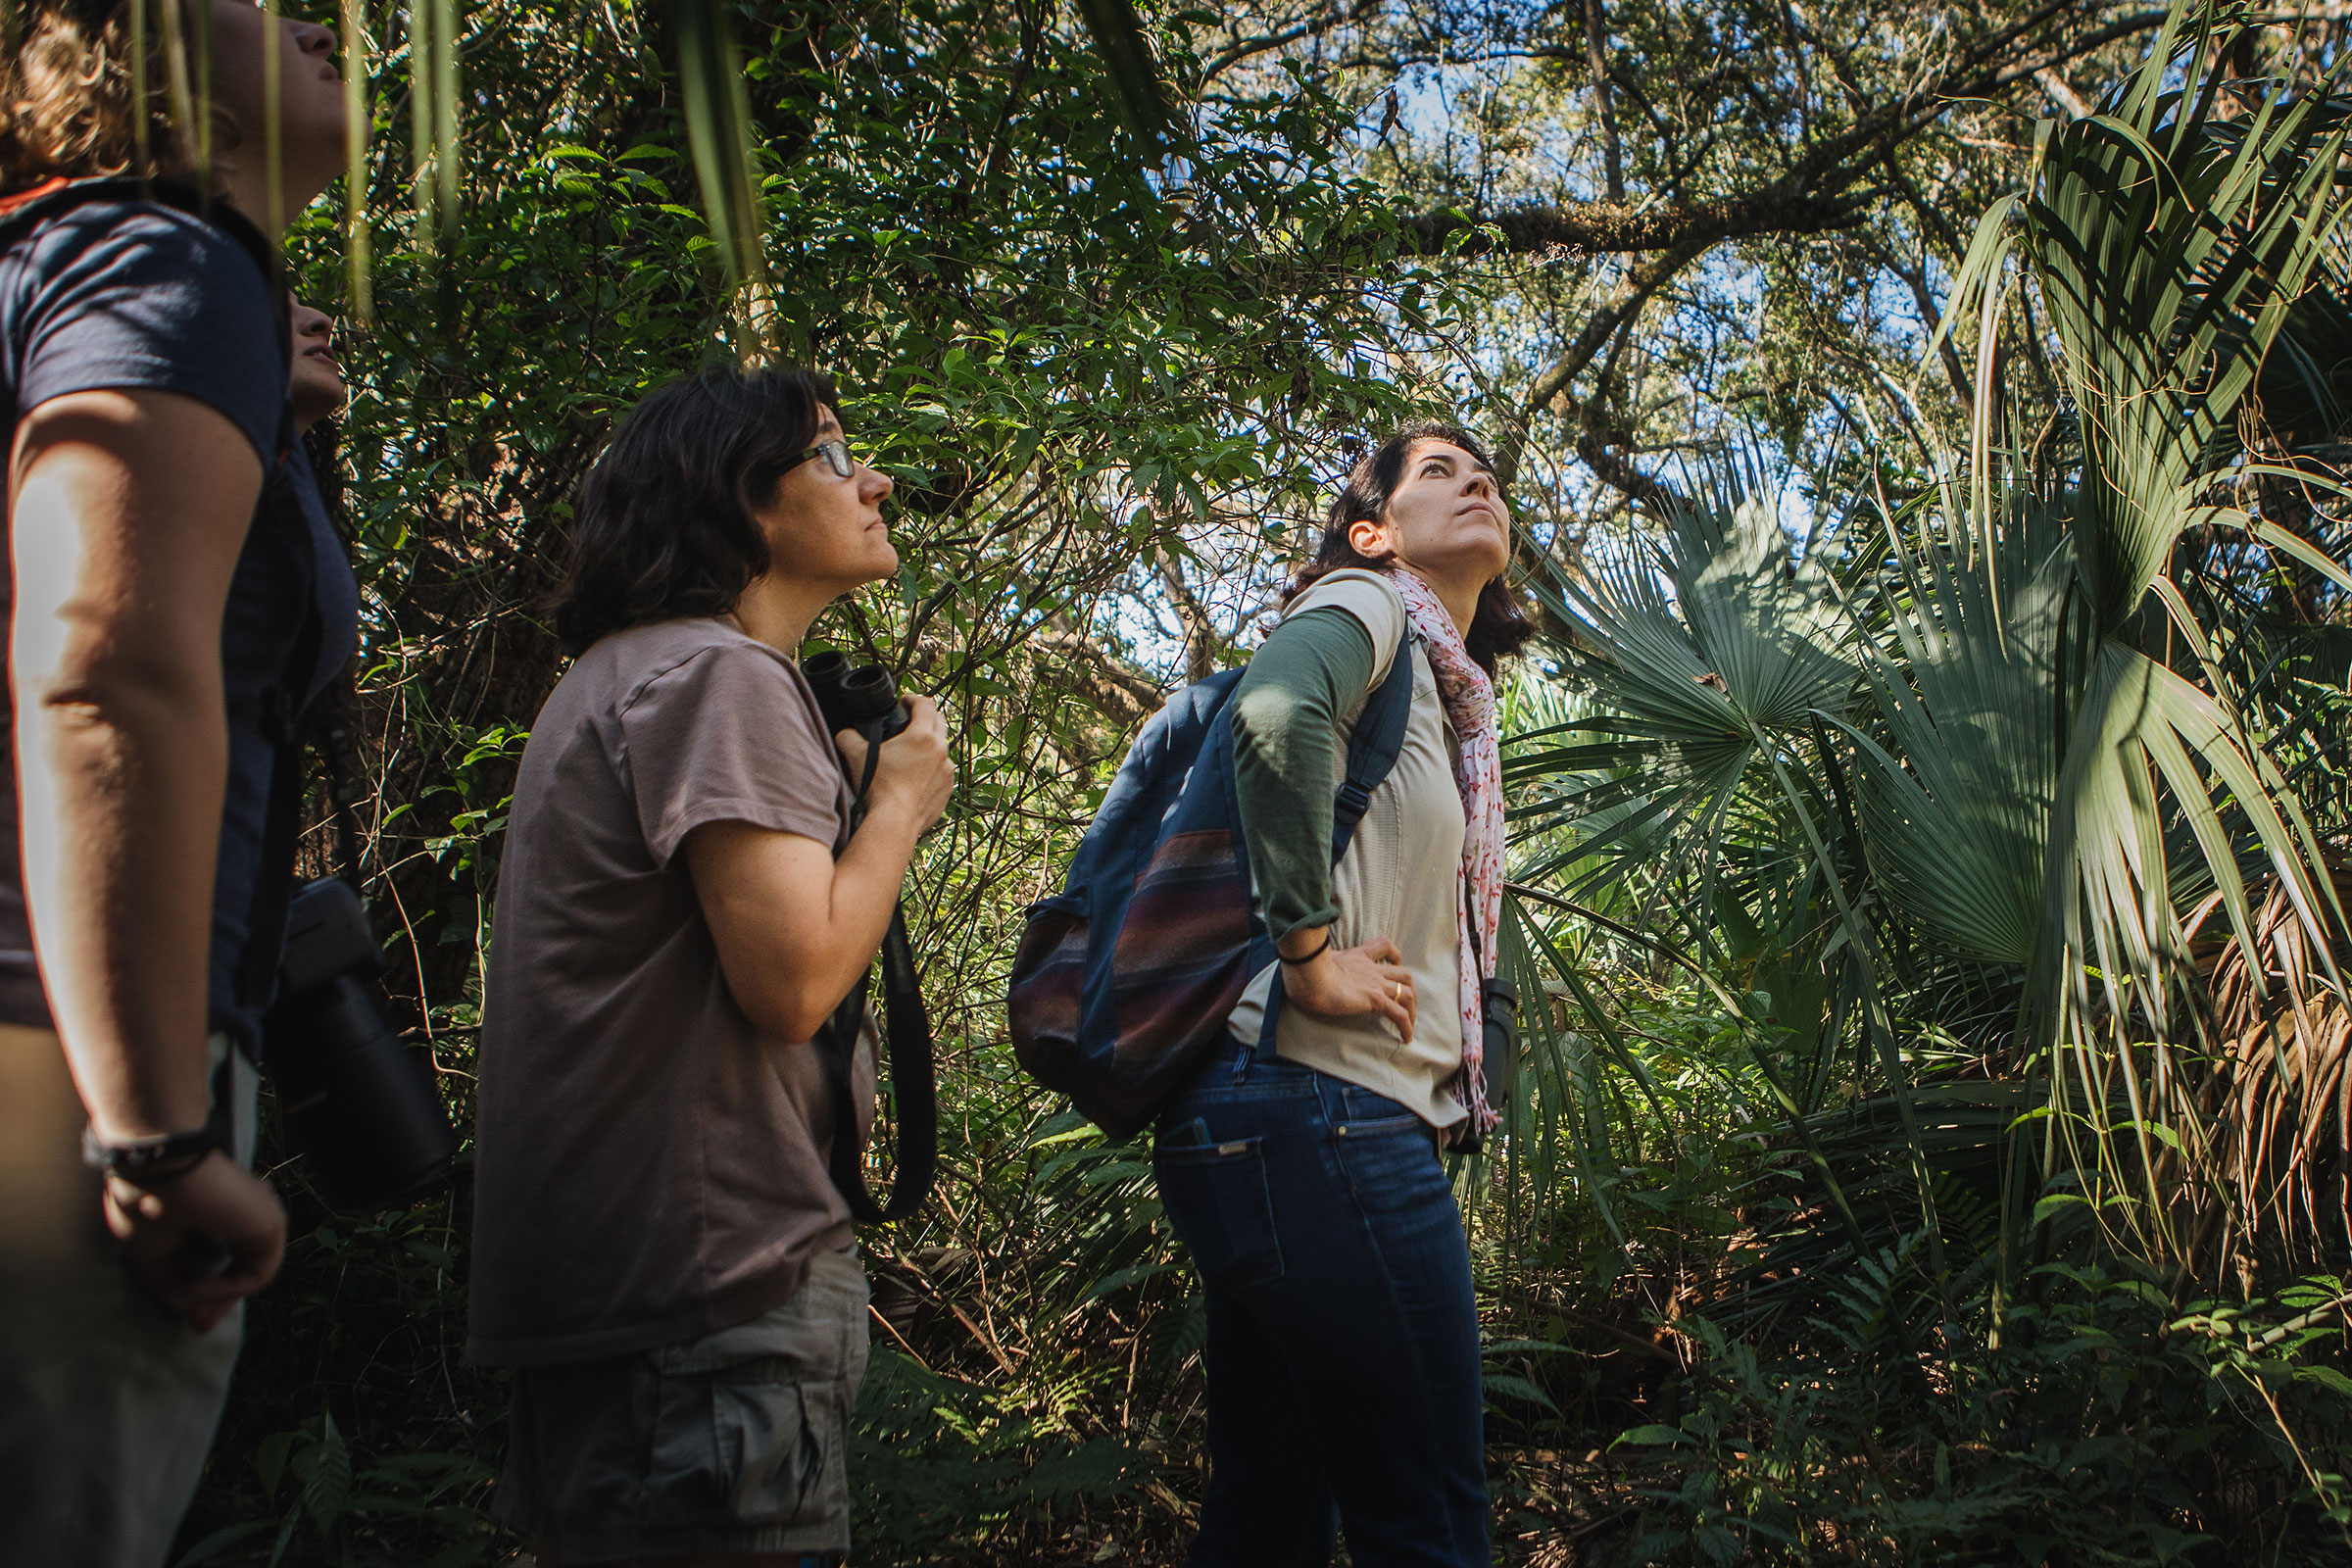 The Phoebes consider themselves serious birders who are interested in science and conservation, but they also make sure to keep their walks light and friendly. Here they explore Florida's Kendall Indian Hammocks Park. Jayme Gershen